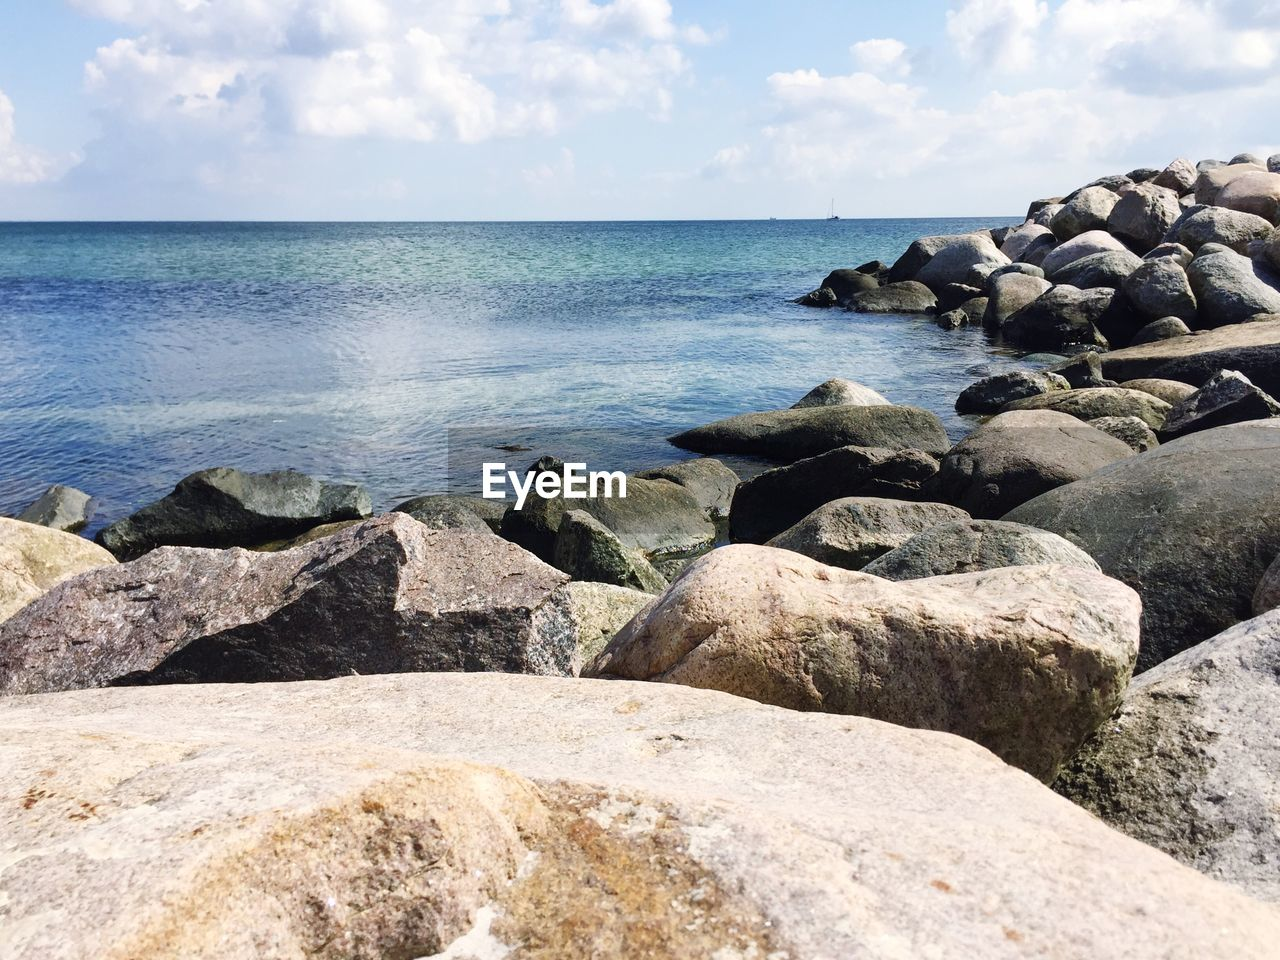 sea, rock - object, water, horizon over water, nature, tranquil scene, sky, scenics, pebble, beauty in nature, rock, tranquility, day, outdoors, pebble beach, no people